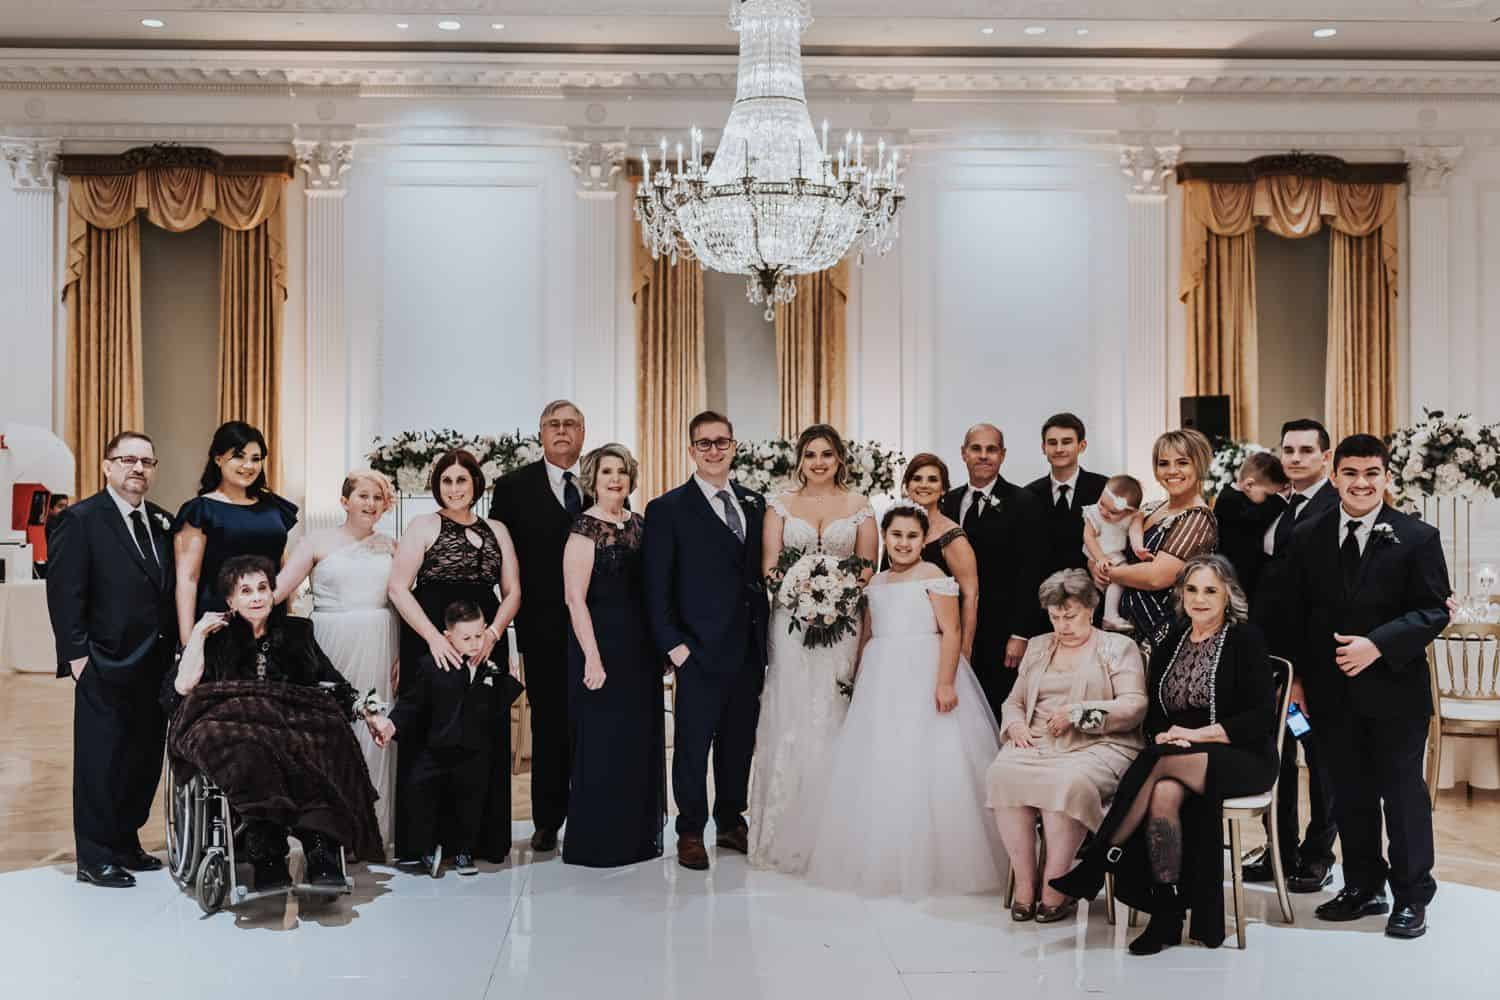 Large family grouping photographed at wedding with grandmother in wheelchair